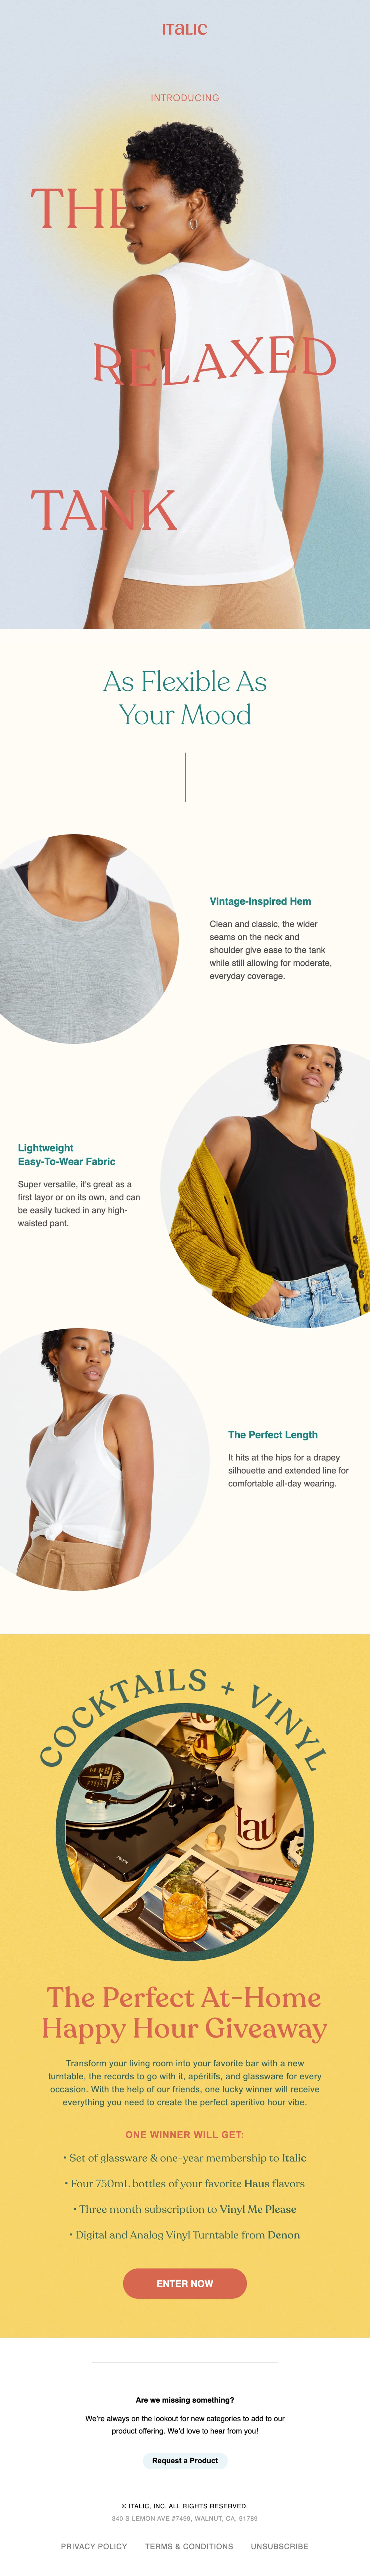 Just Arrived: The Relaxed Tank Email Screenshot